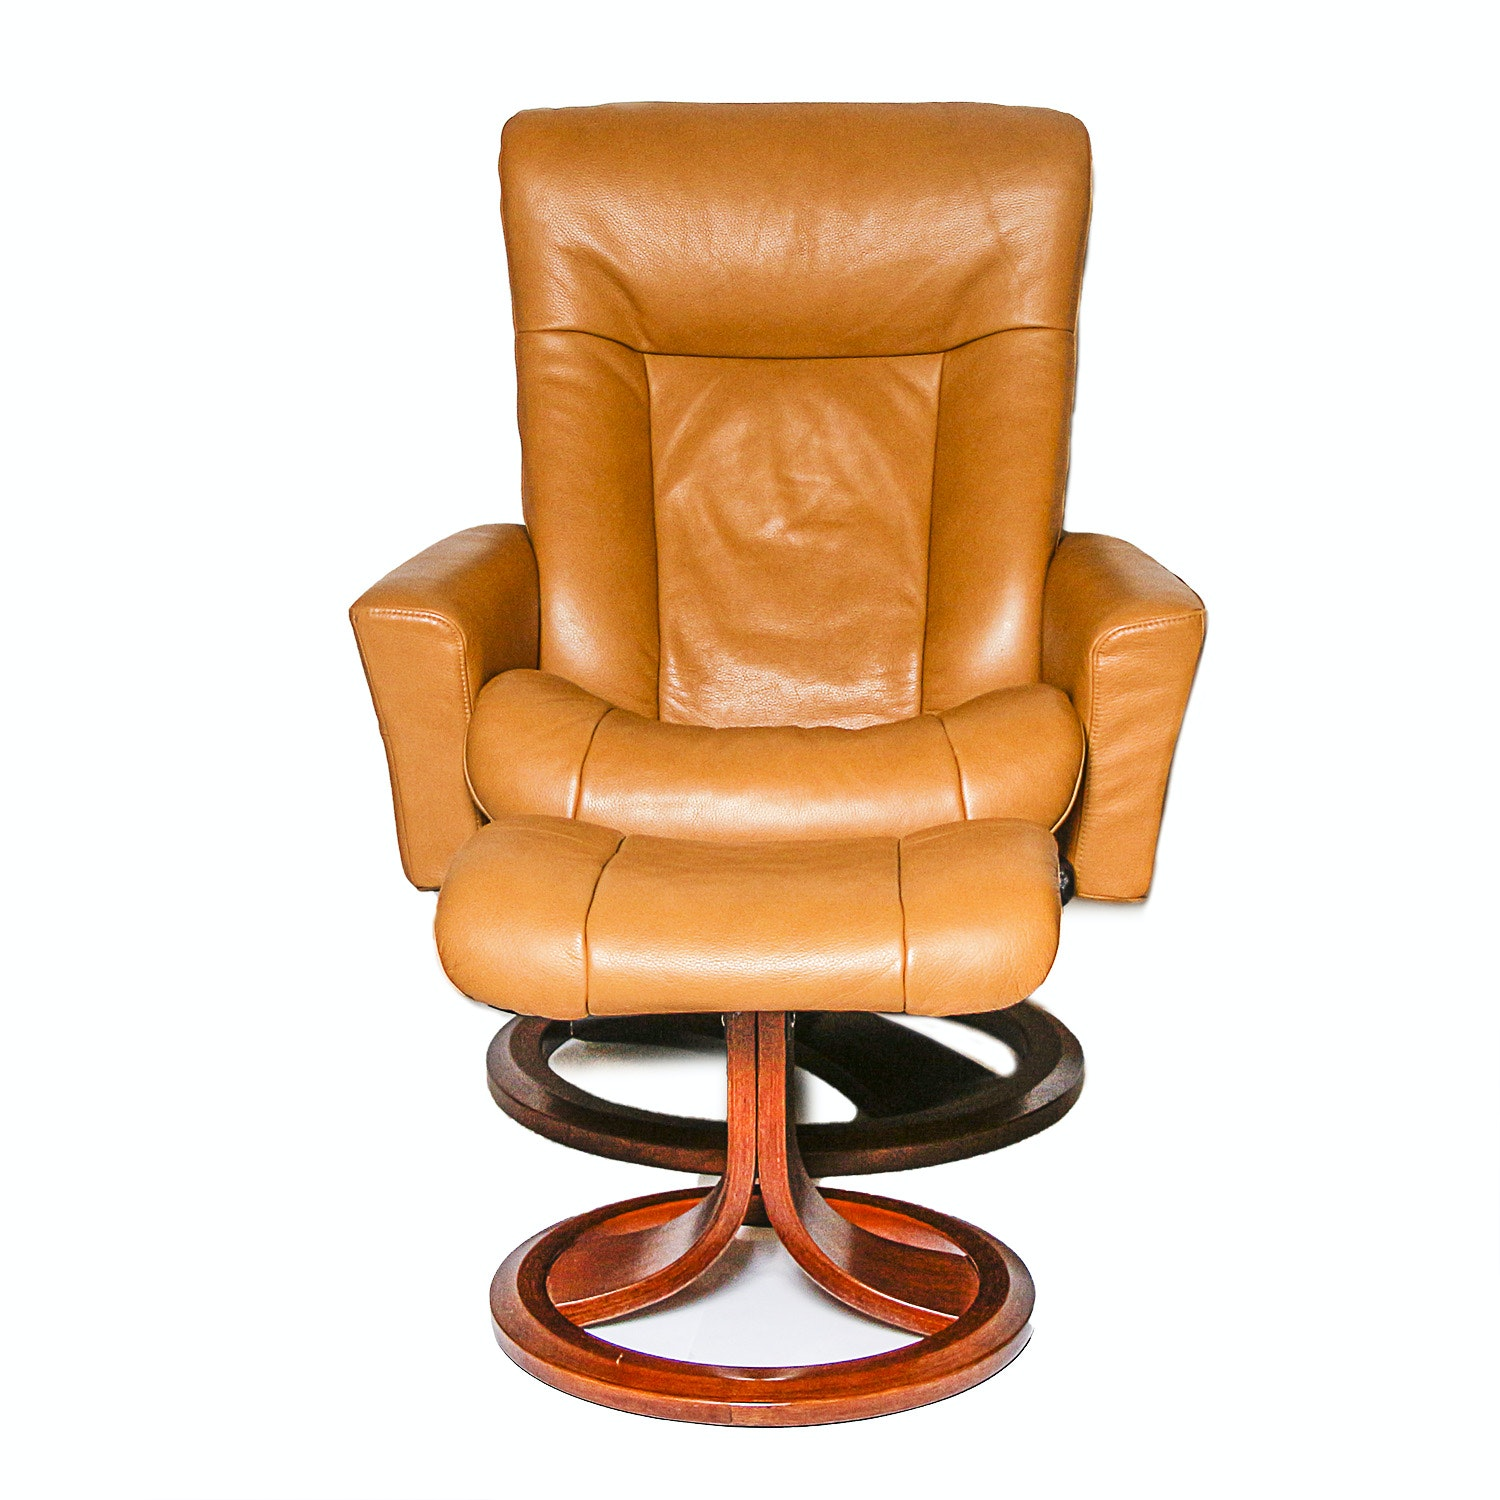 IMG Contemporary Leather Chair and Ottoman